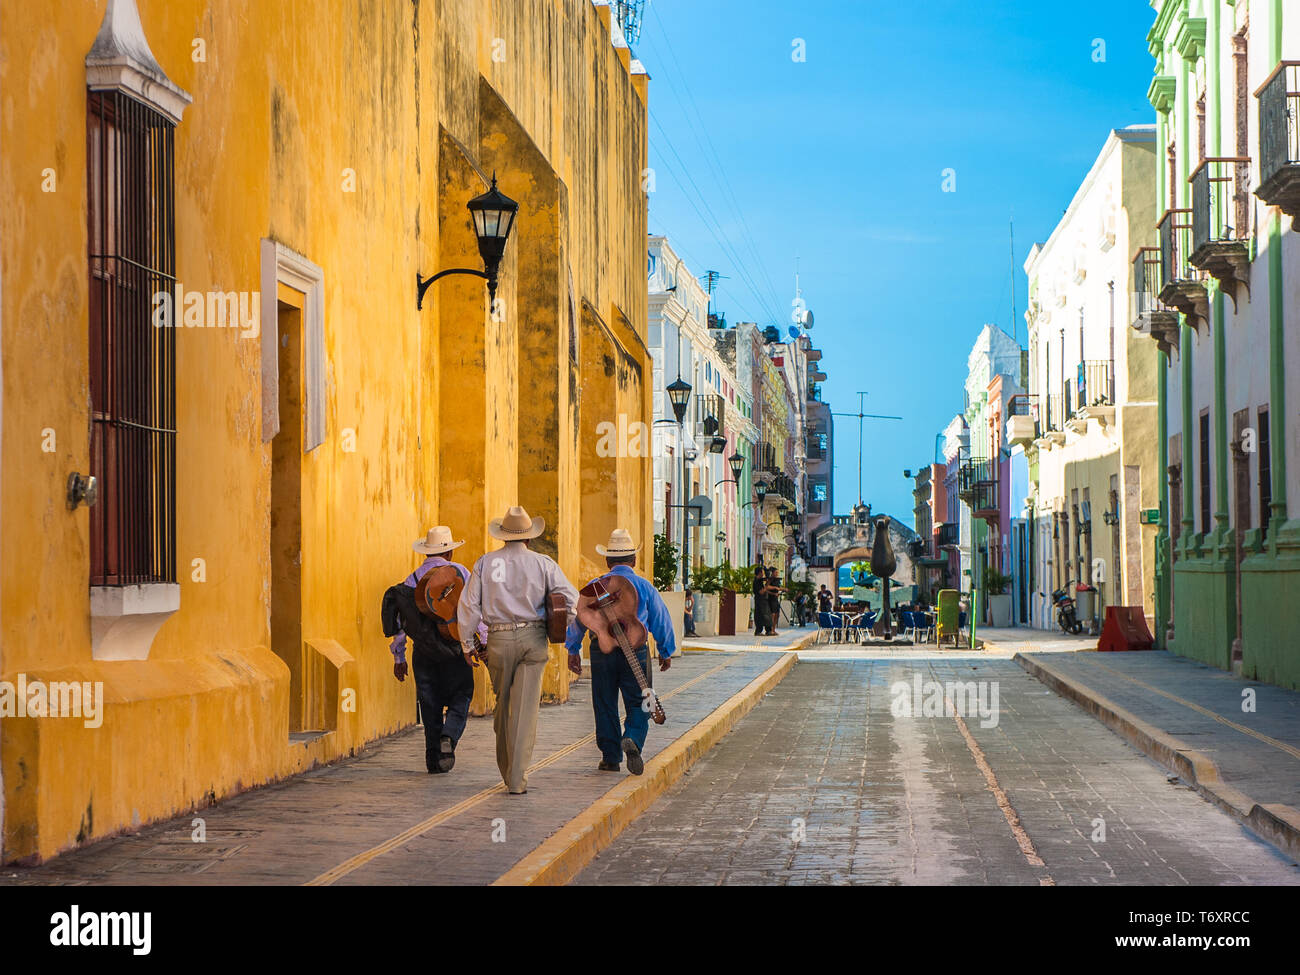 Mariachi on the streets of colonial Campeche city, Mexico Stock Photo